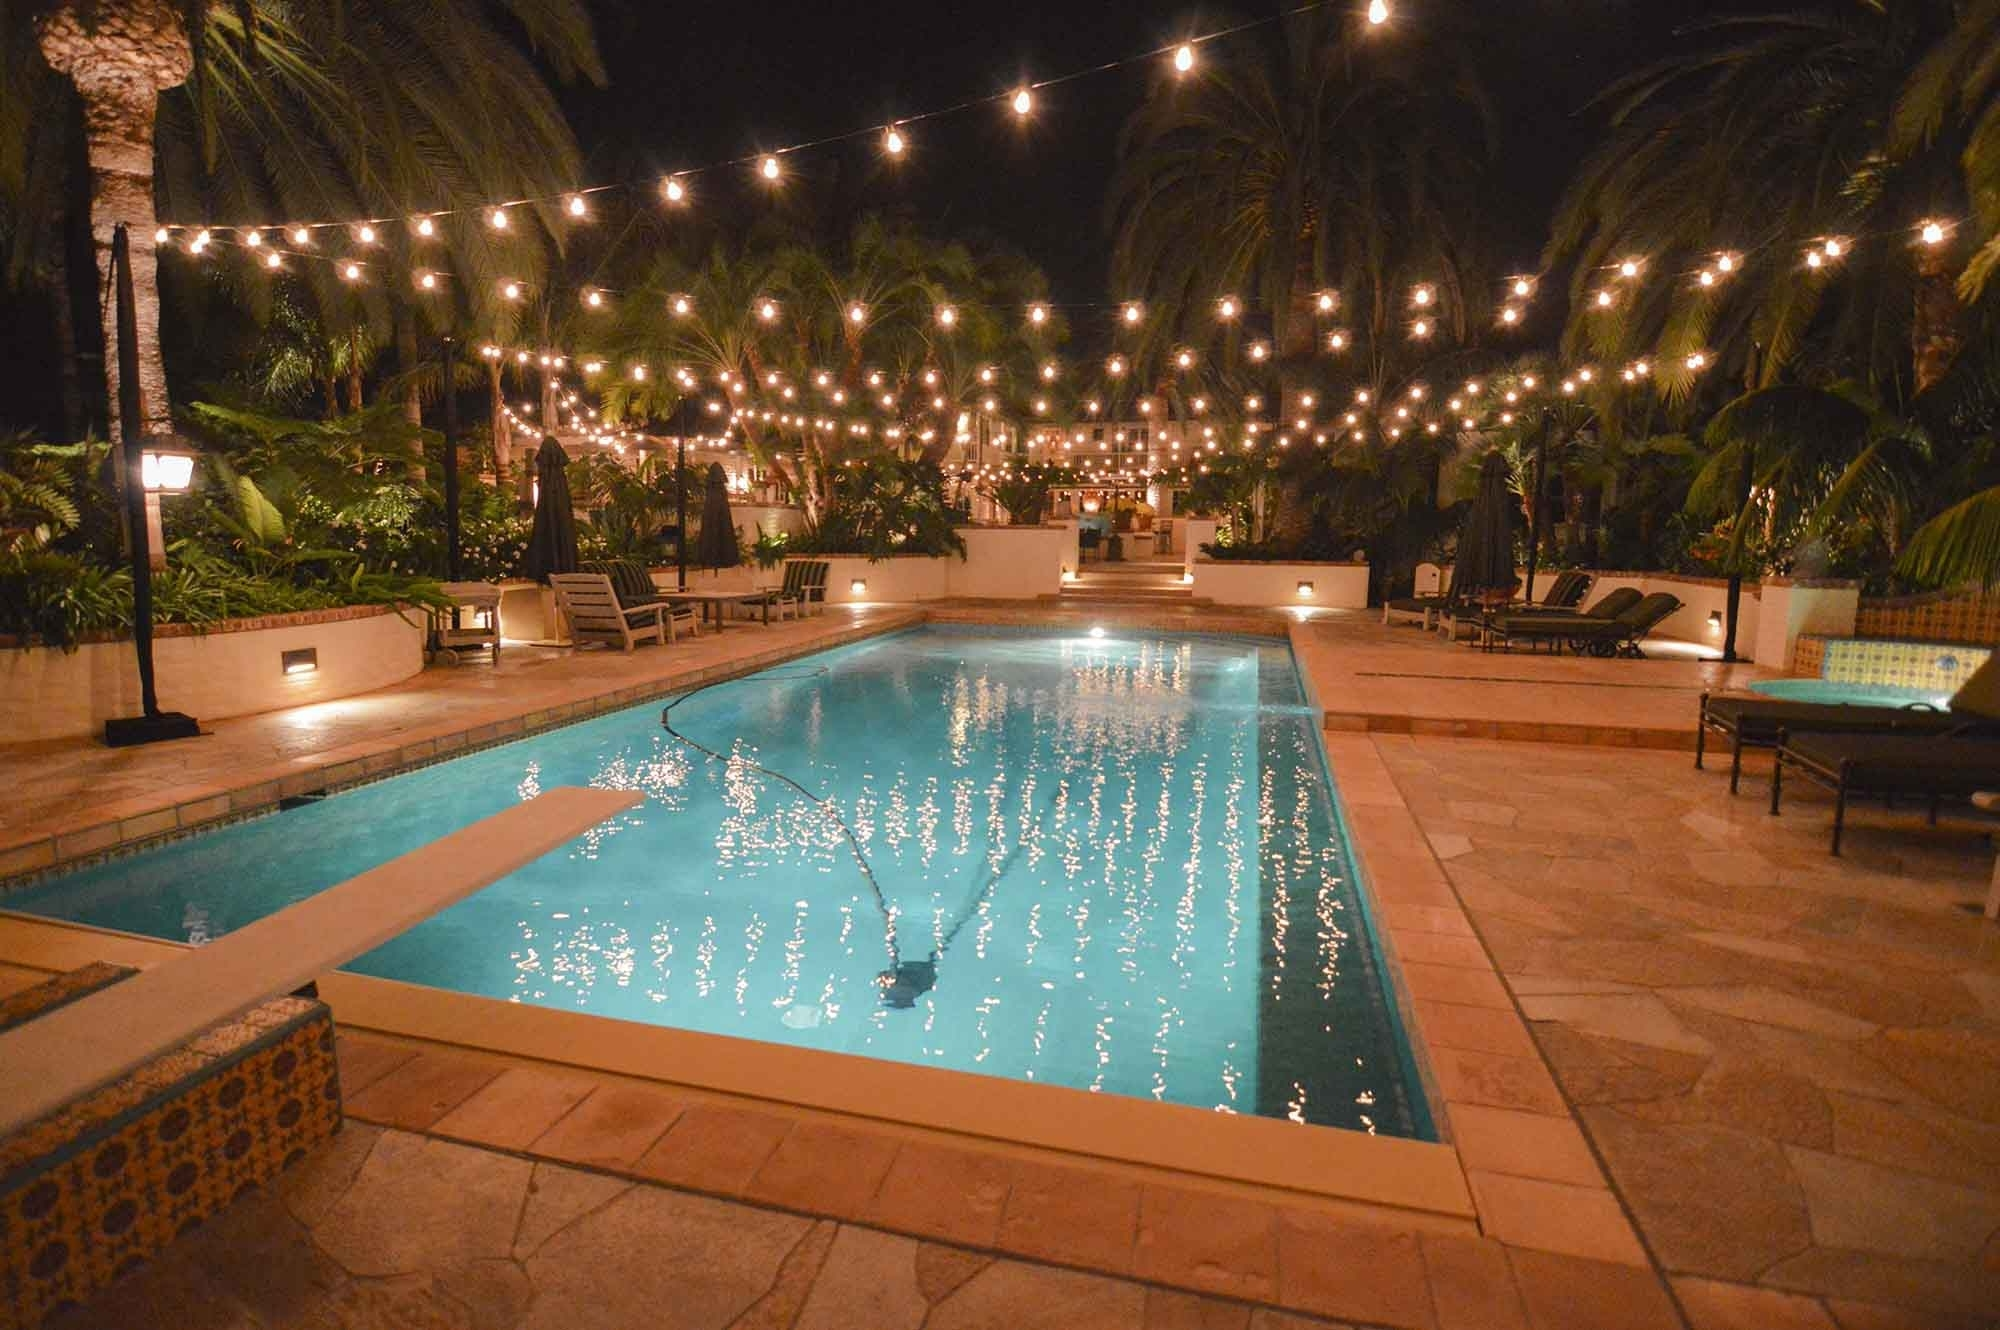 Market Lights, Party, Globe & Patio String Lights Outdoor For Most Popular Outdoor Pool Lanterns (View 16 of 20)